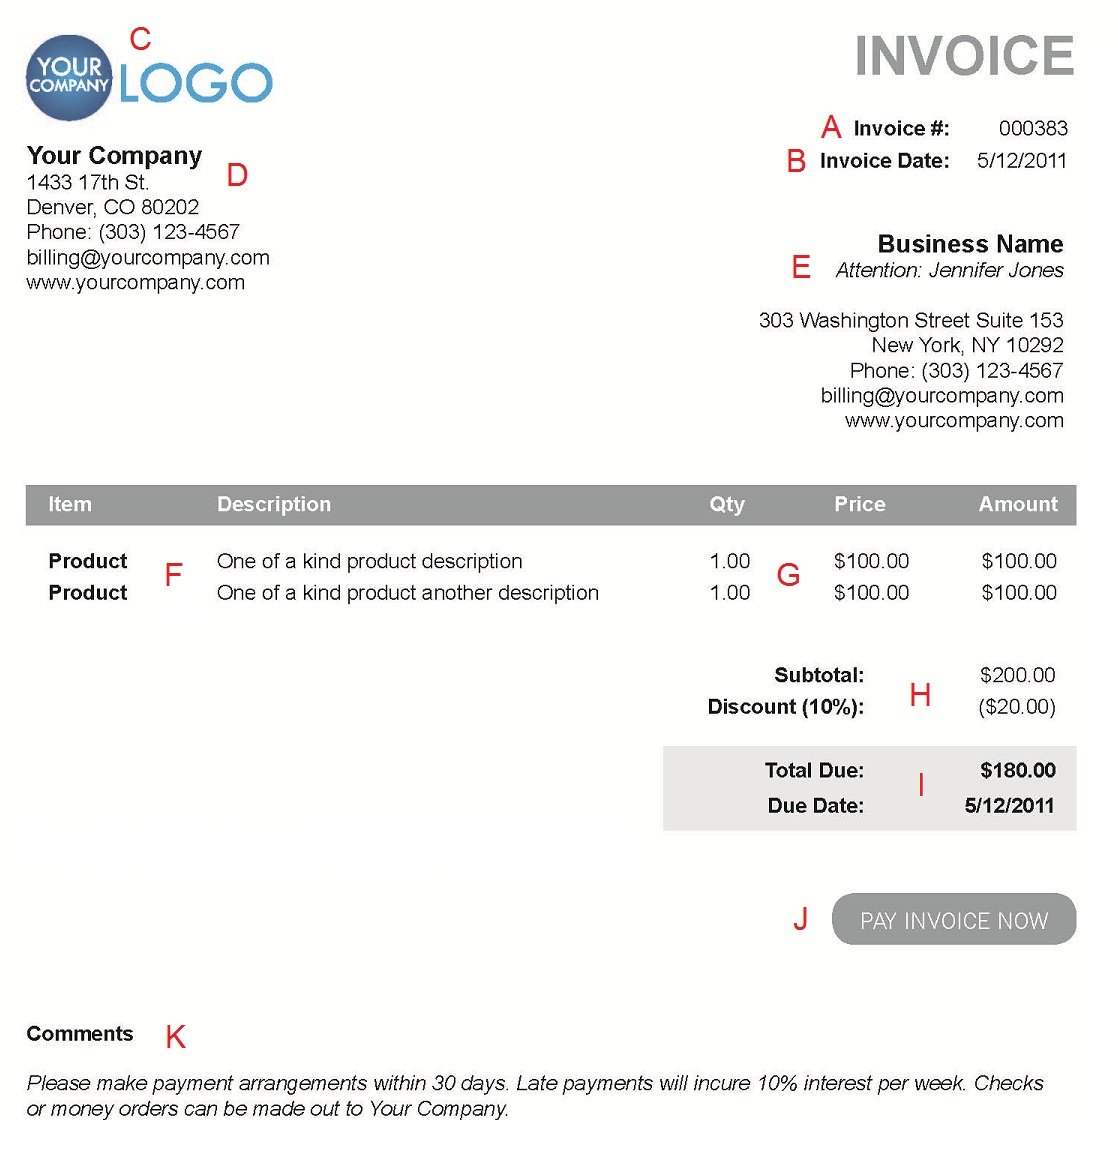 Coolmathgamesus  Winsome The  Different Sections Of An Electronic Payment Invoice With Marvelous A  With Delectable Crm And Invoicing Also Travel Agency Invoice Format In Addition Invoices Free Online And Invoicing With Excel As Well As Invoice Template Basic Additionally Receive Invoice From Paysimplecom With Coolmathgamesus  Marvelous The  Different Sections Of An Electronic Payment Invoice With Delectable A  And Winsome Crm And Invoicing Also Travel Agency Invoice Format In Addition Invoices Free Online From Paysimplecom